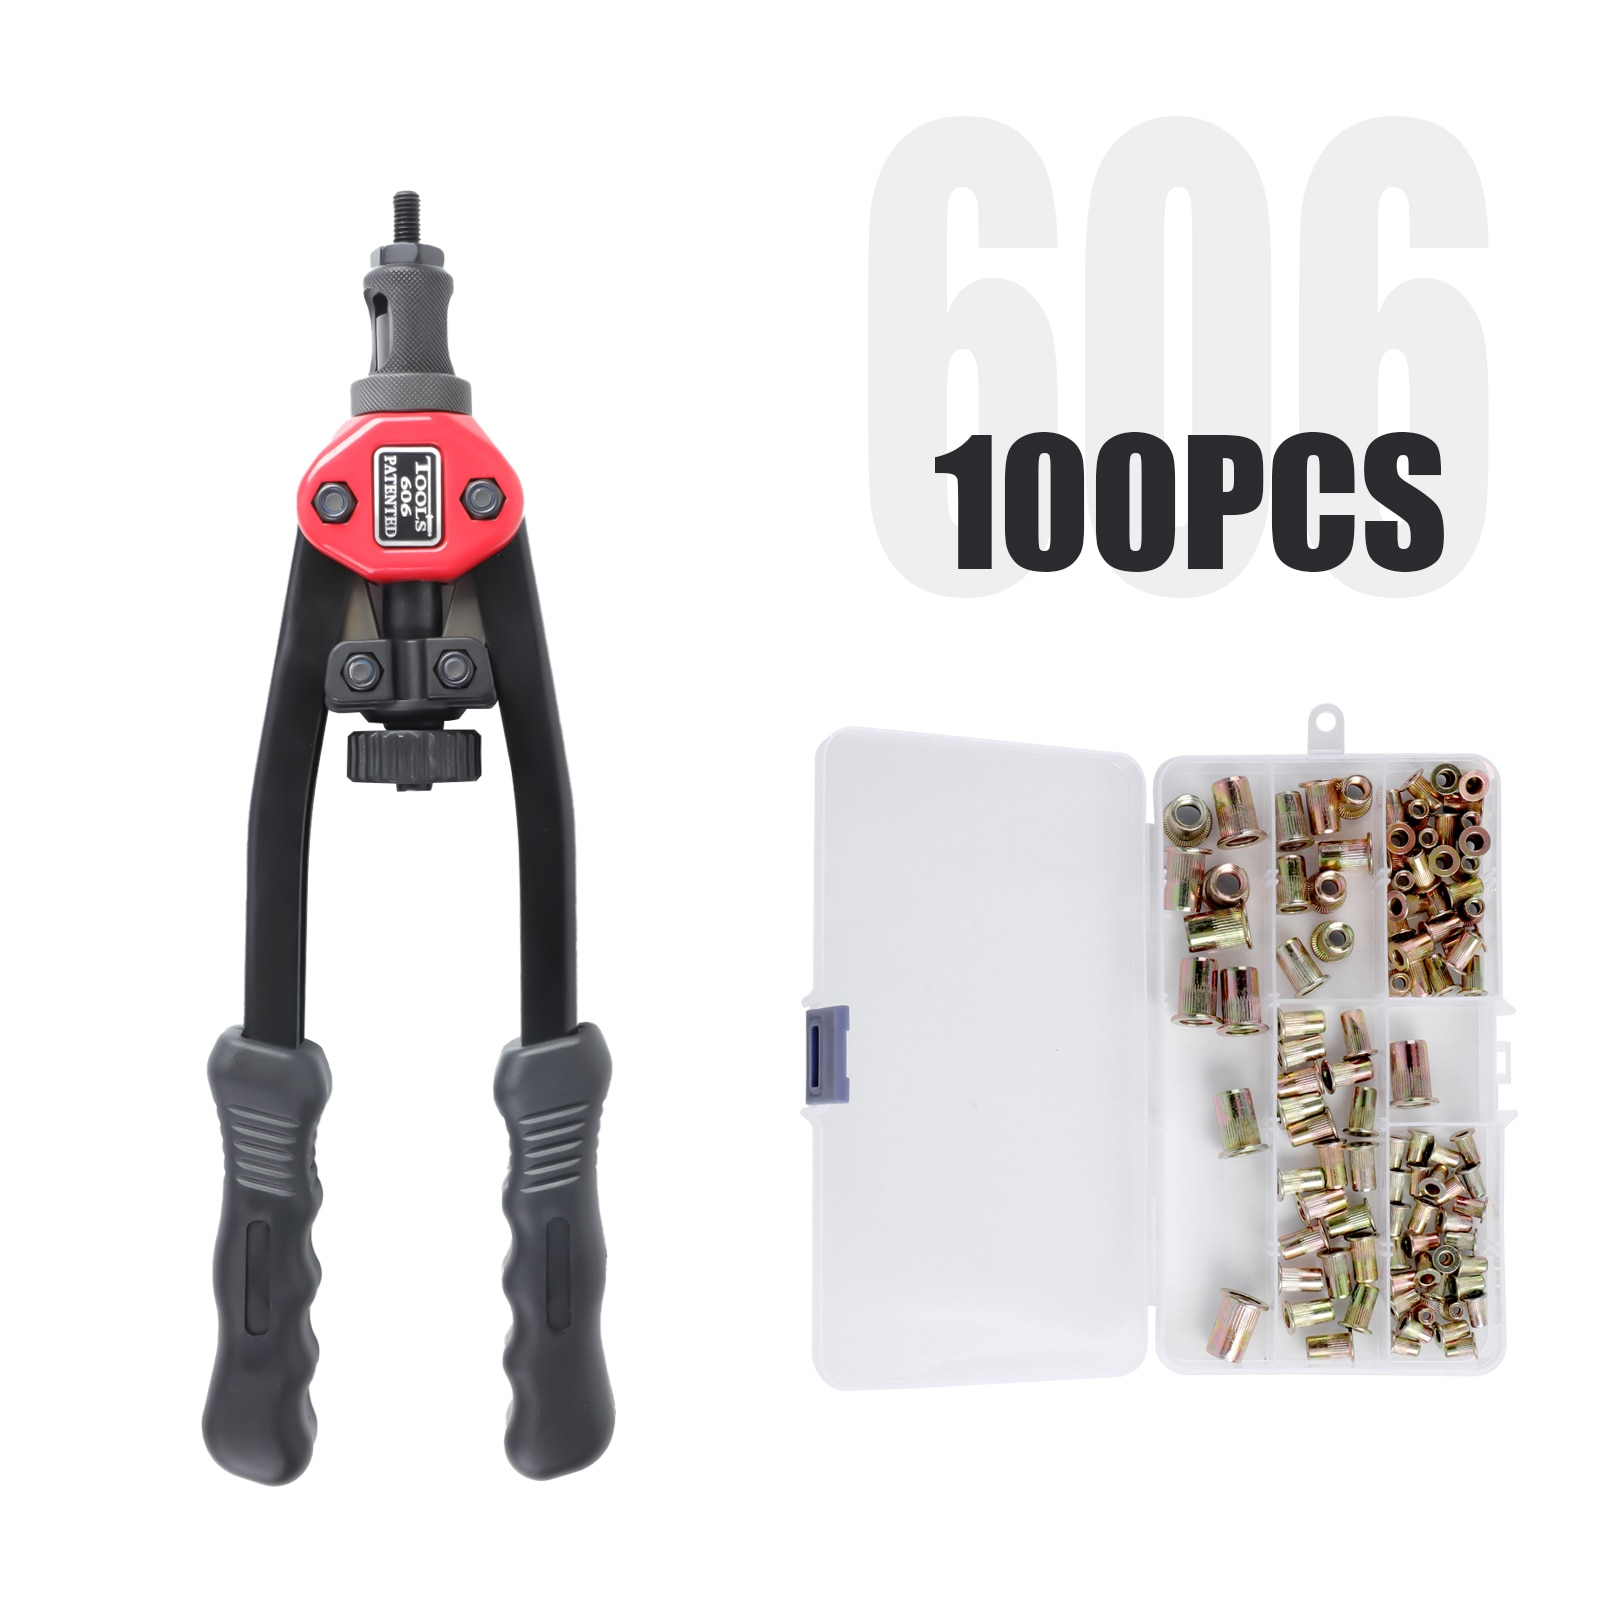 Bt606 rivet nut tool m3 M4 M5 M6 with 5 interchangeable spindles, manual rivet nut installation tool kit for 100 rivet nuts